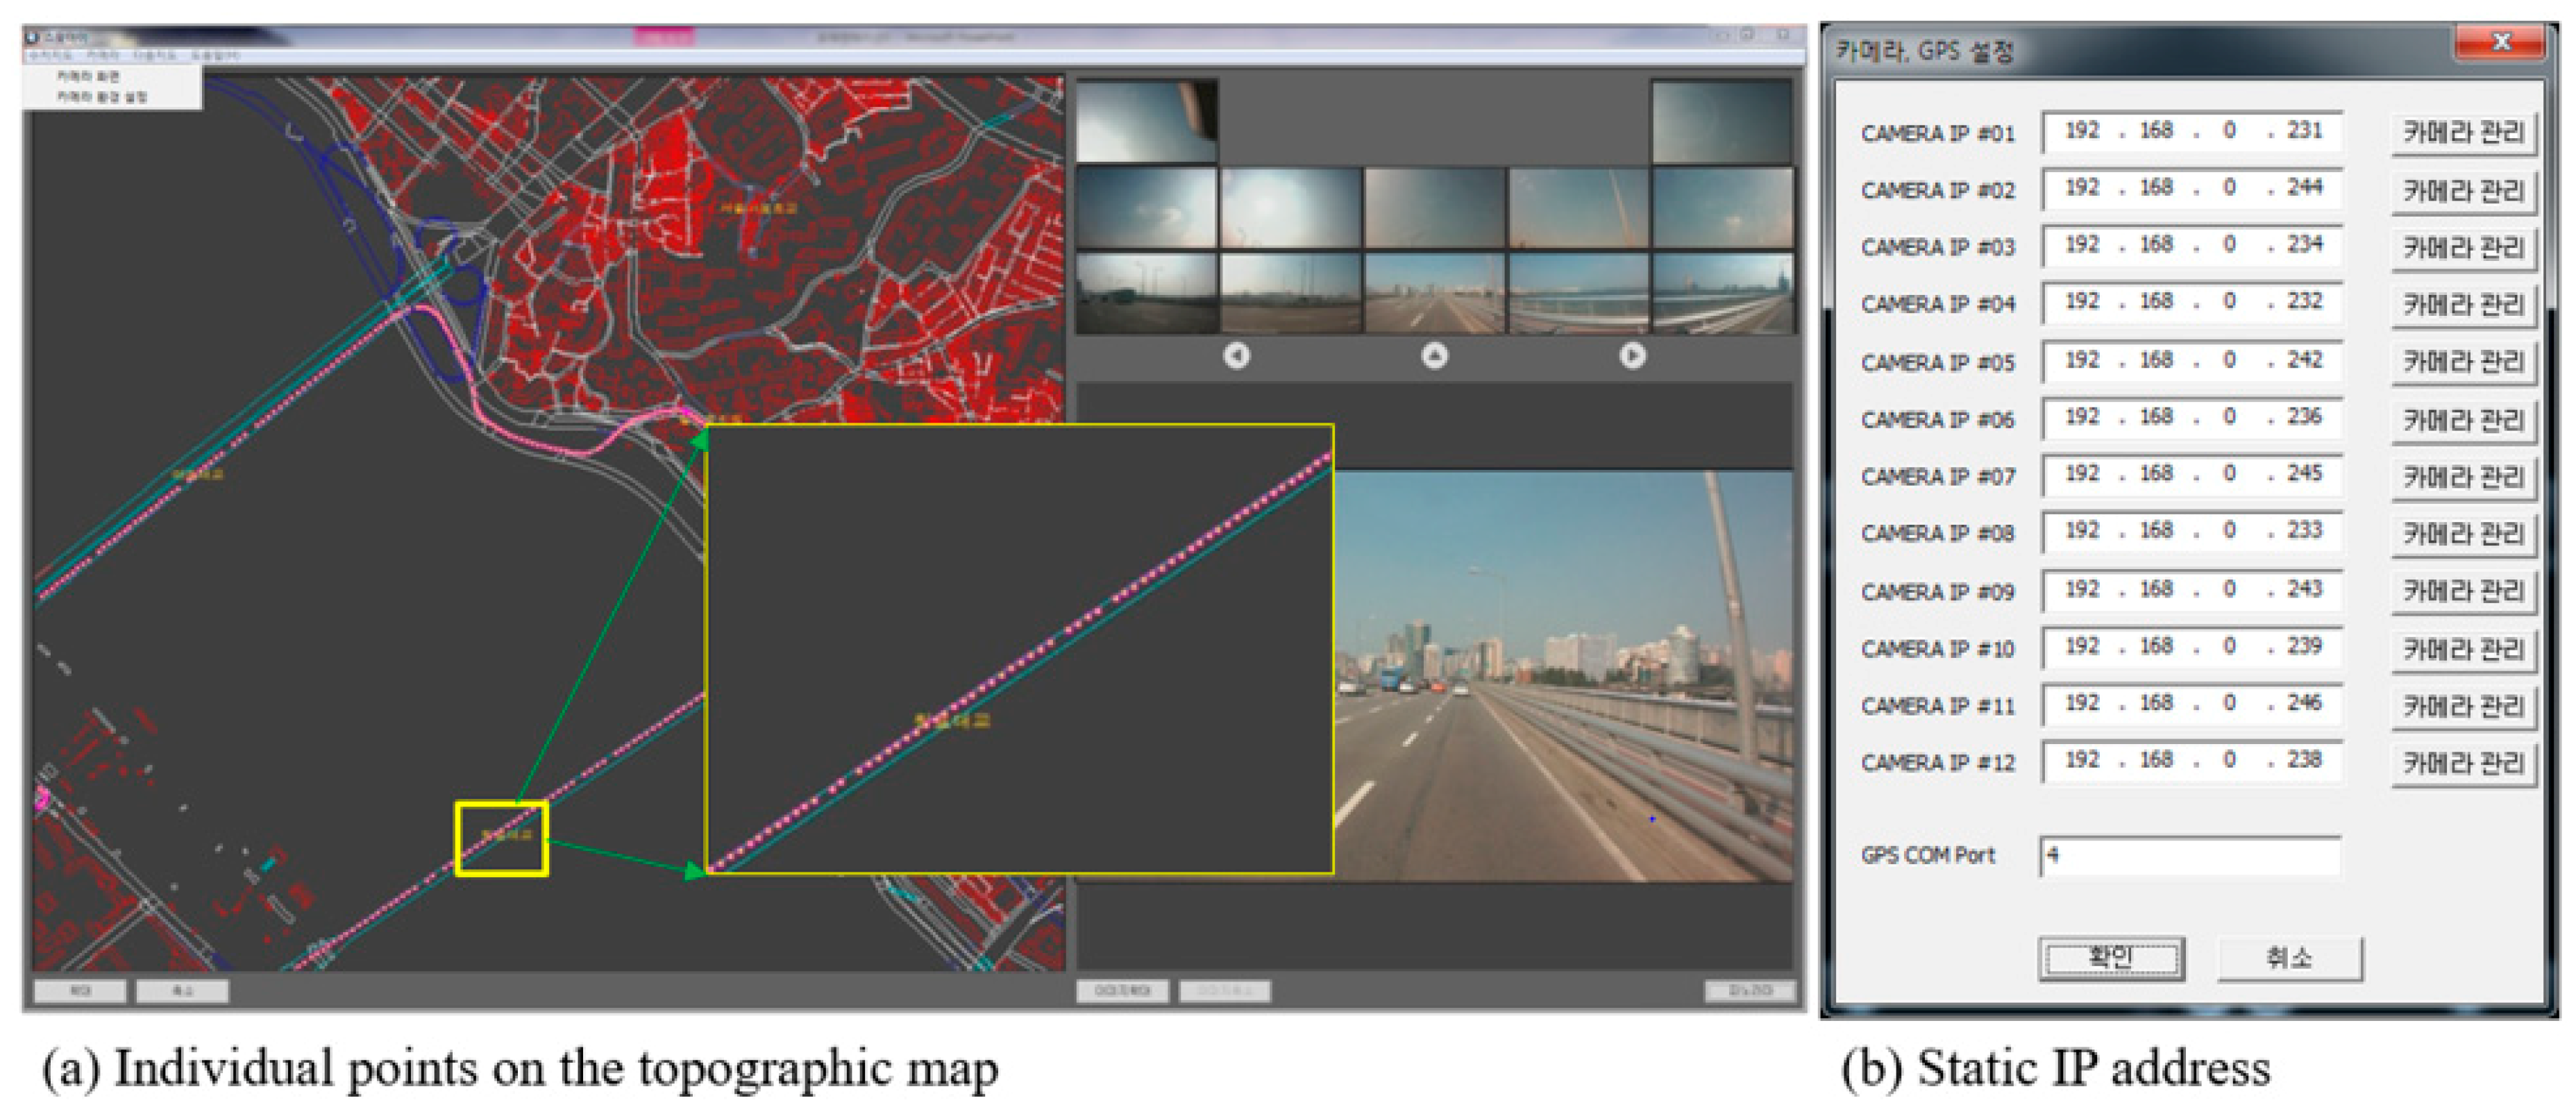 Sustainability | Free Full-Text | Developing a Mobile Mapping System